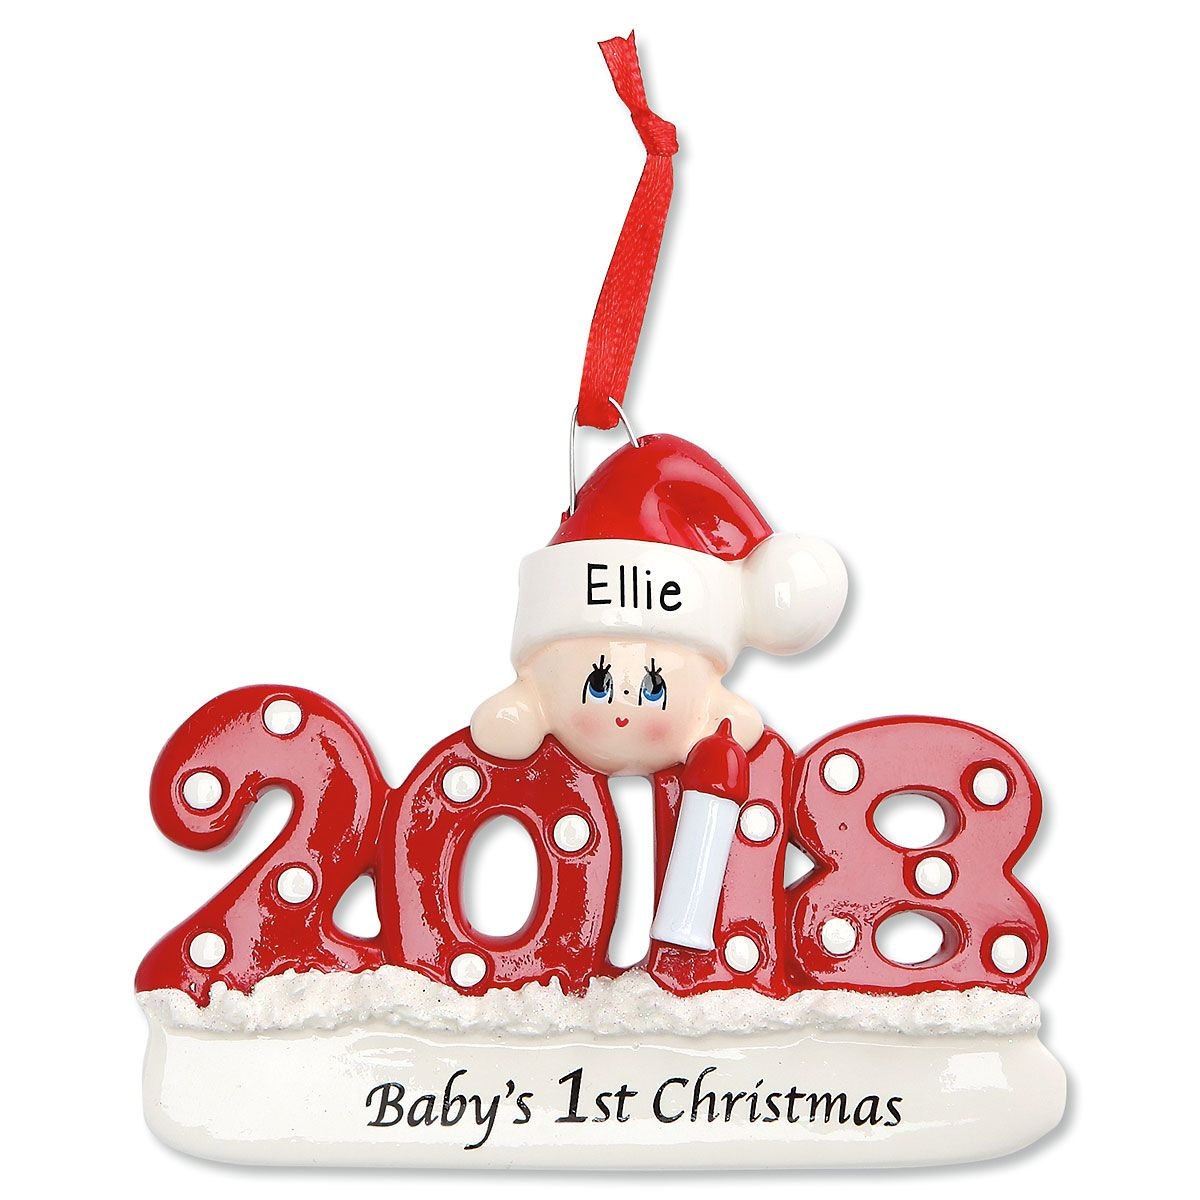 2018 Babys 1st Personalized Christmas Ornament Current